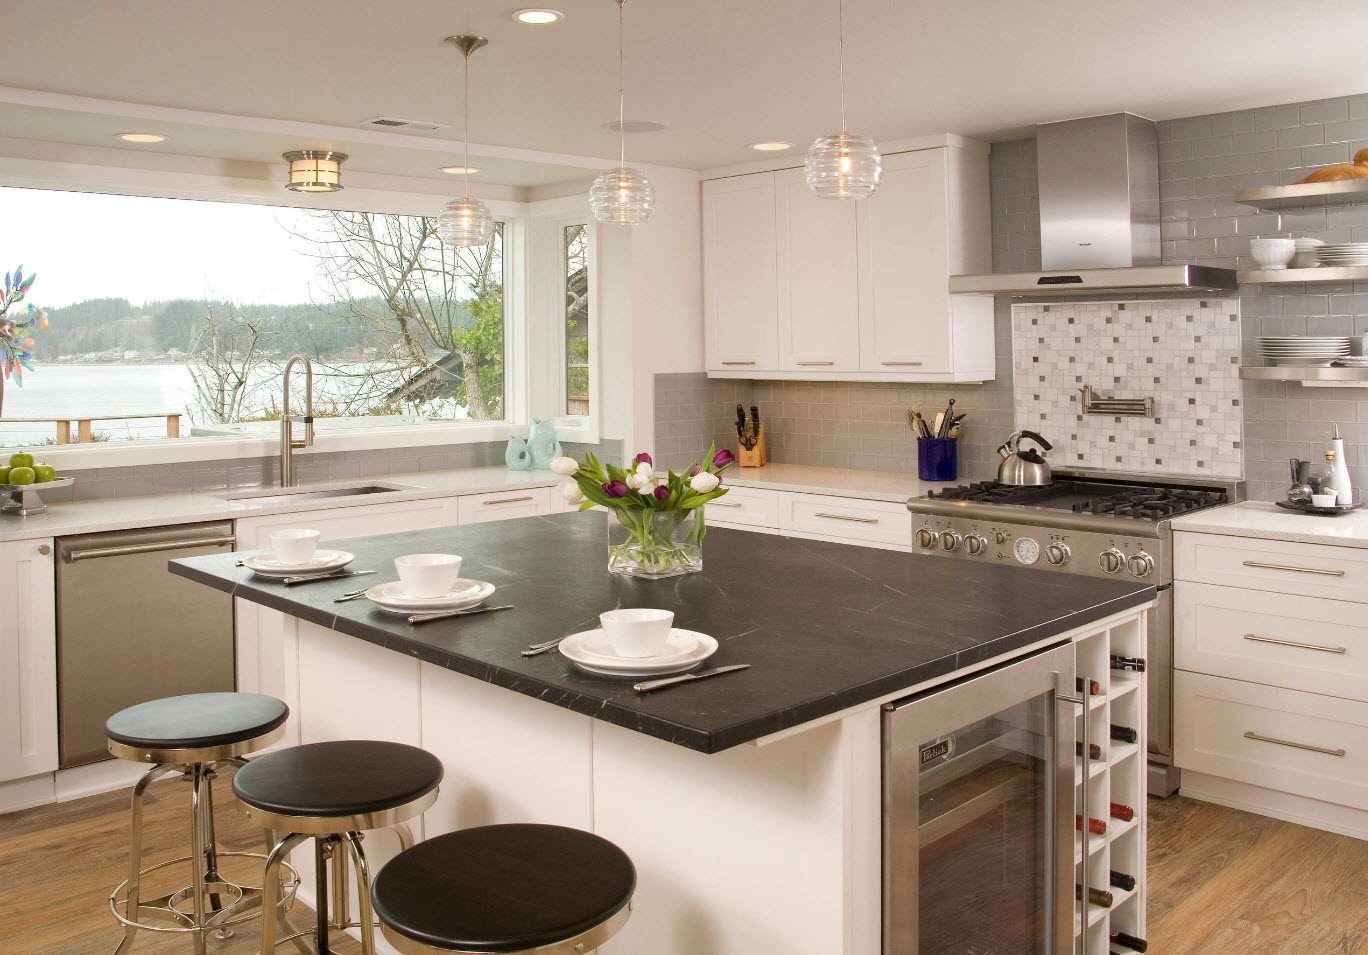 170 Square Feet Kitchen Design Ideas with Photos. Black and white combination at the large cooking space